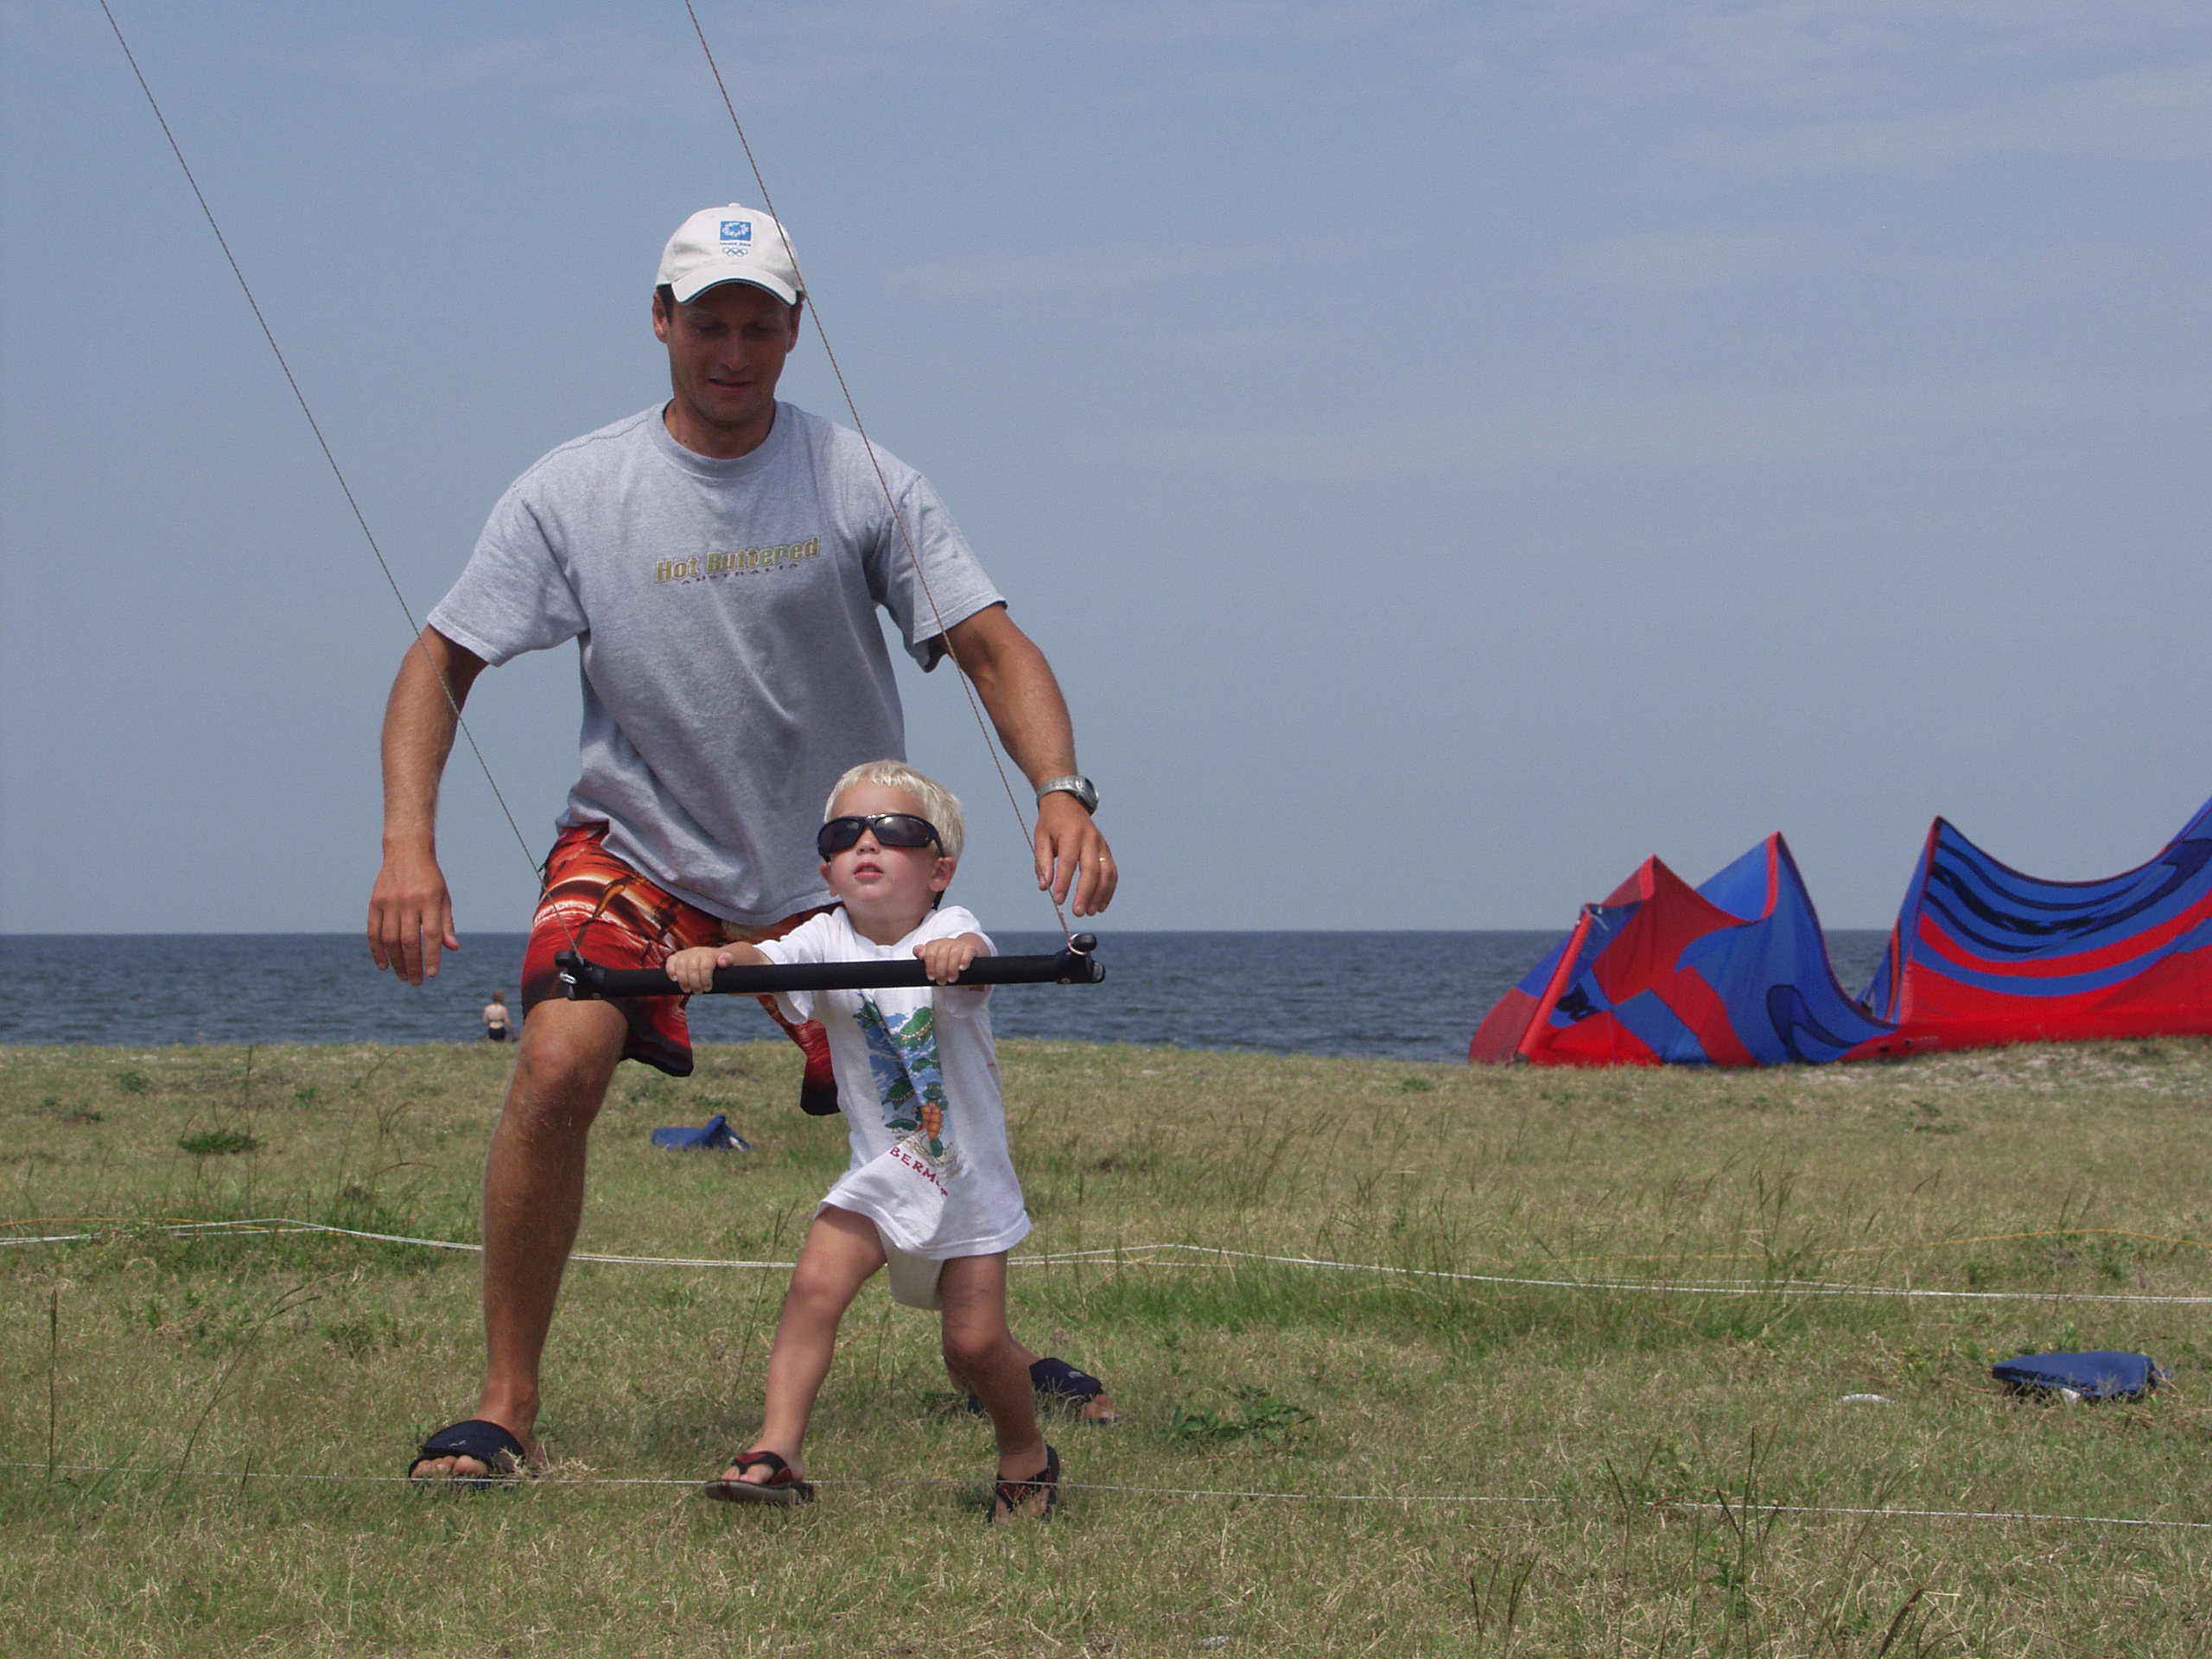 Cameron geting pulled by Trainer kite.jpg